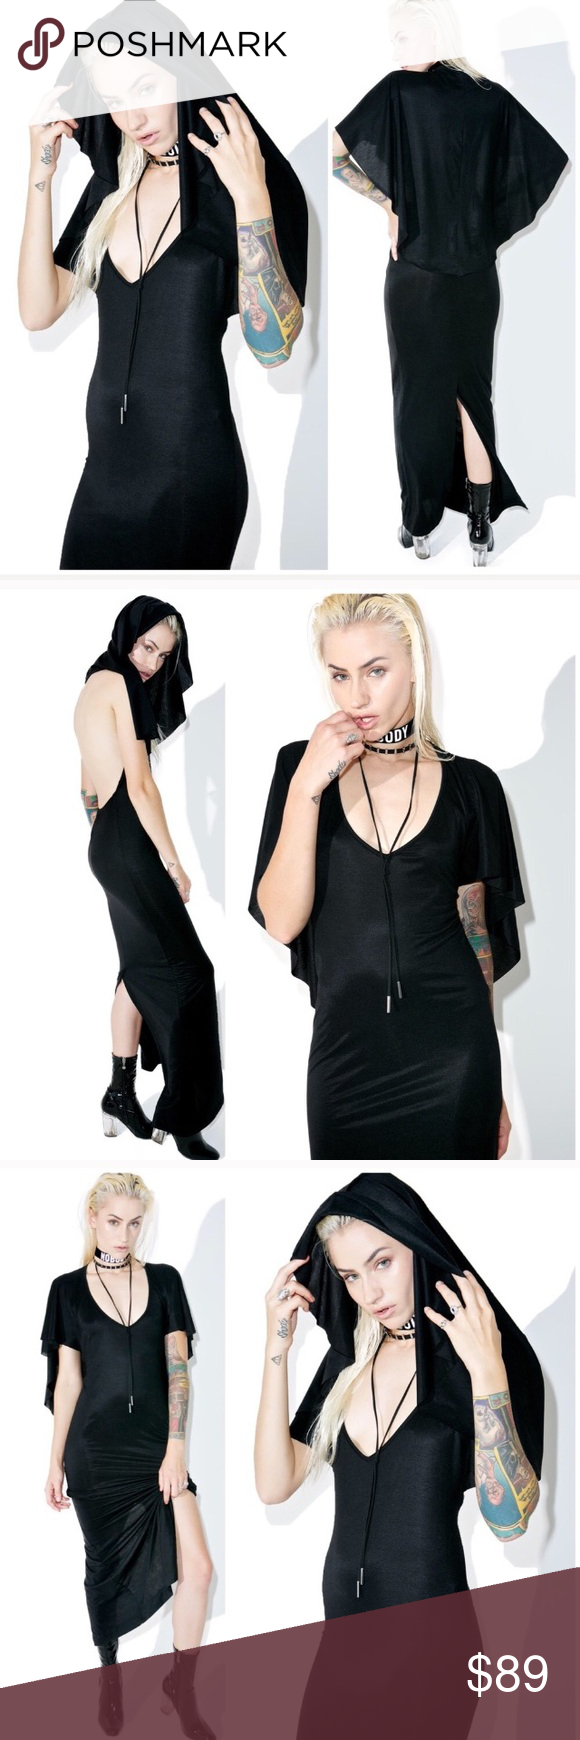 Gothic witch hooded black dress lip service widow boutique vampire